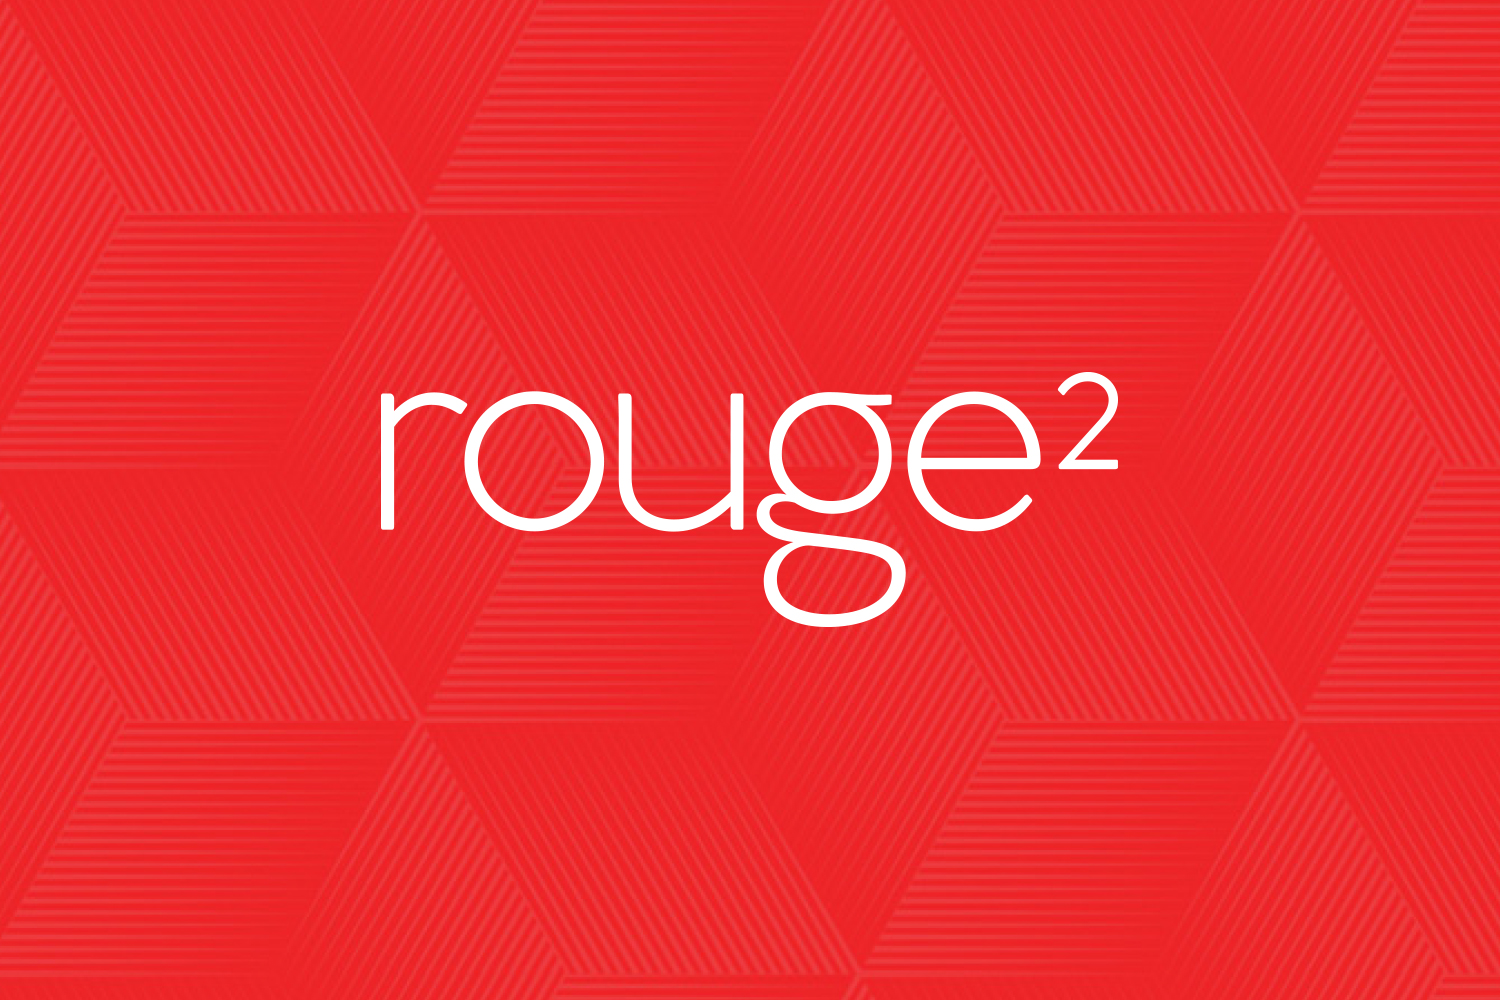 rouge2-3